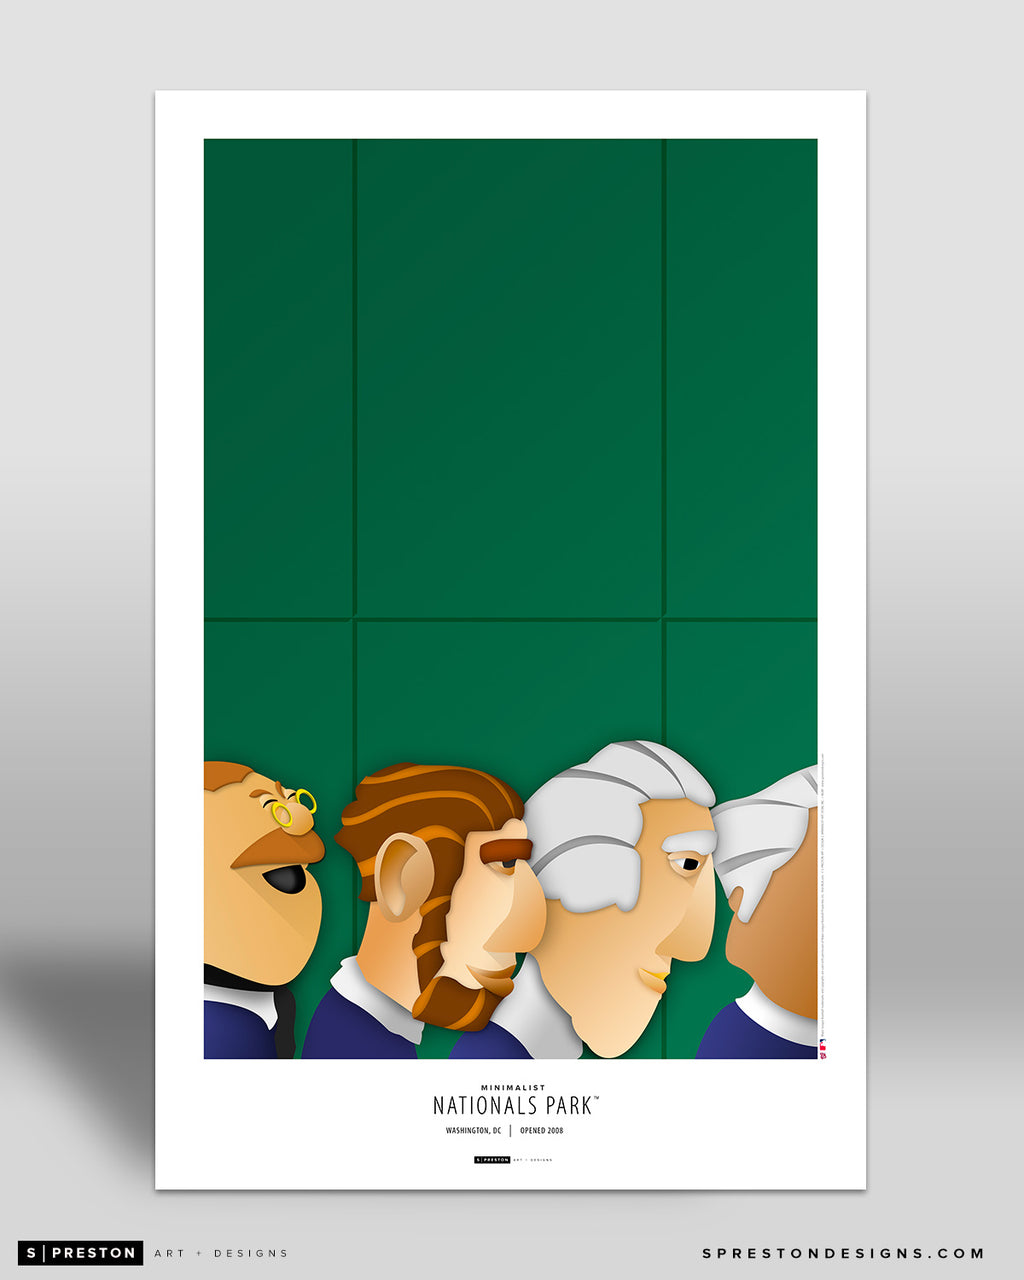 Minimalist Nationals Park Art Poster Art Poster - Washington Nationals - S. Preston Art + Designs